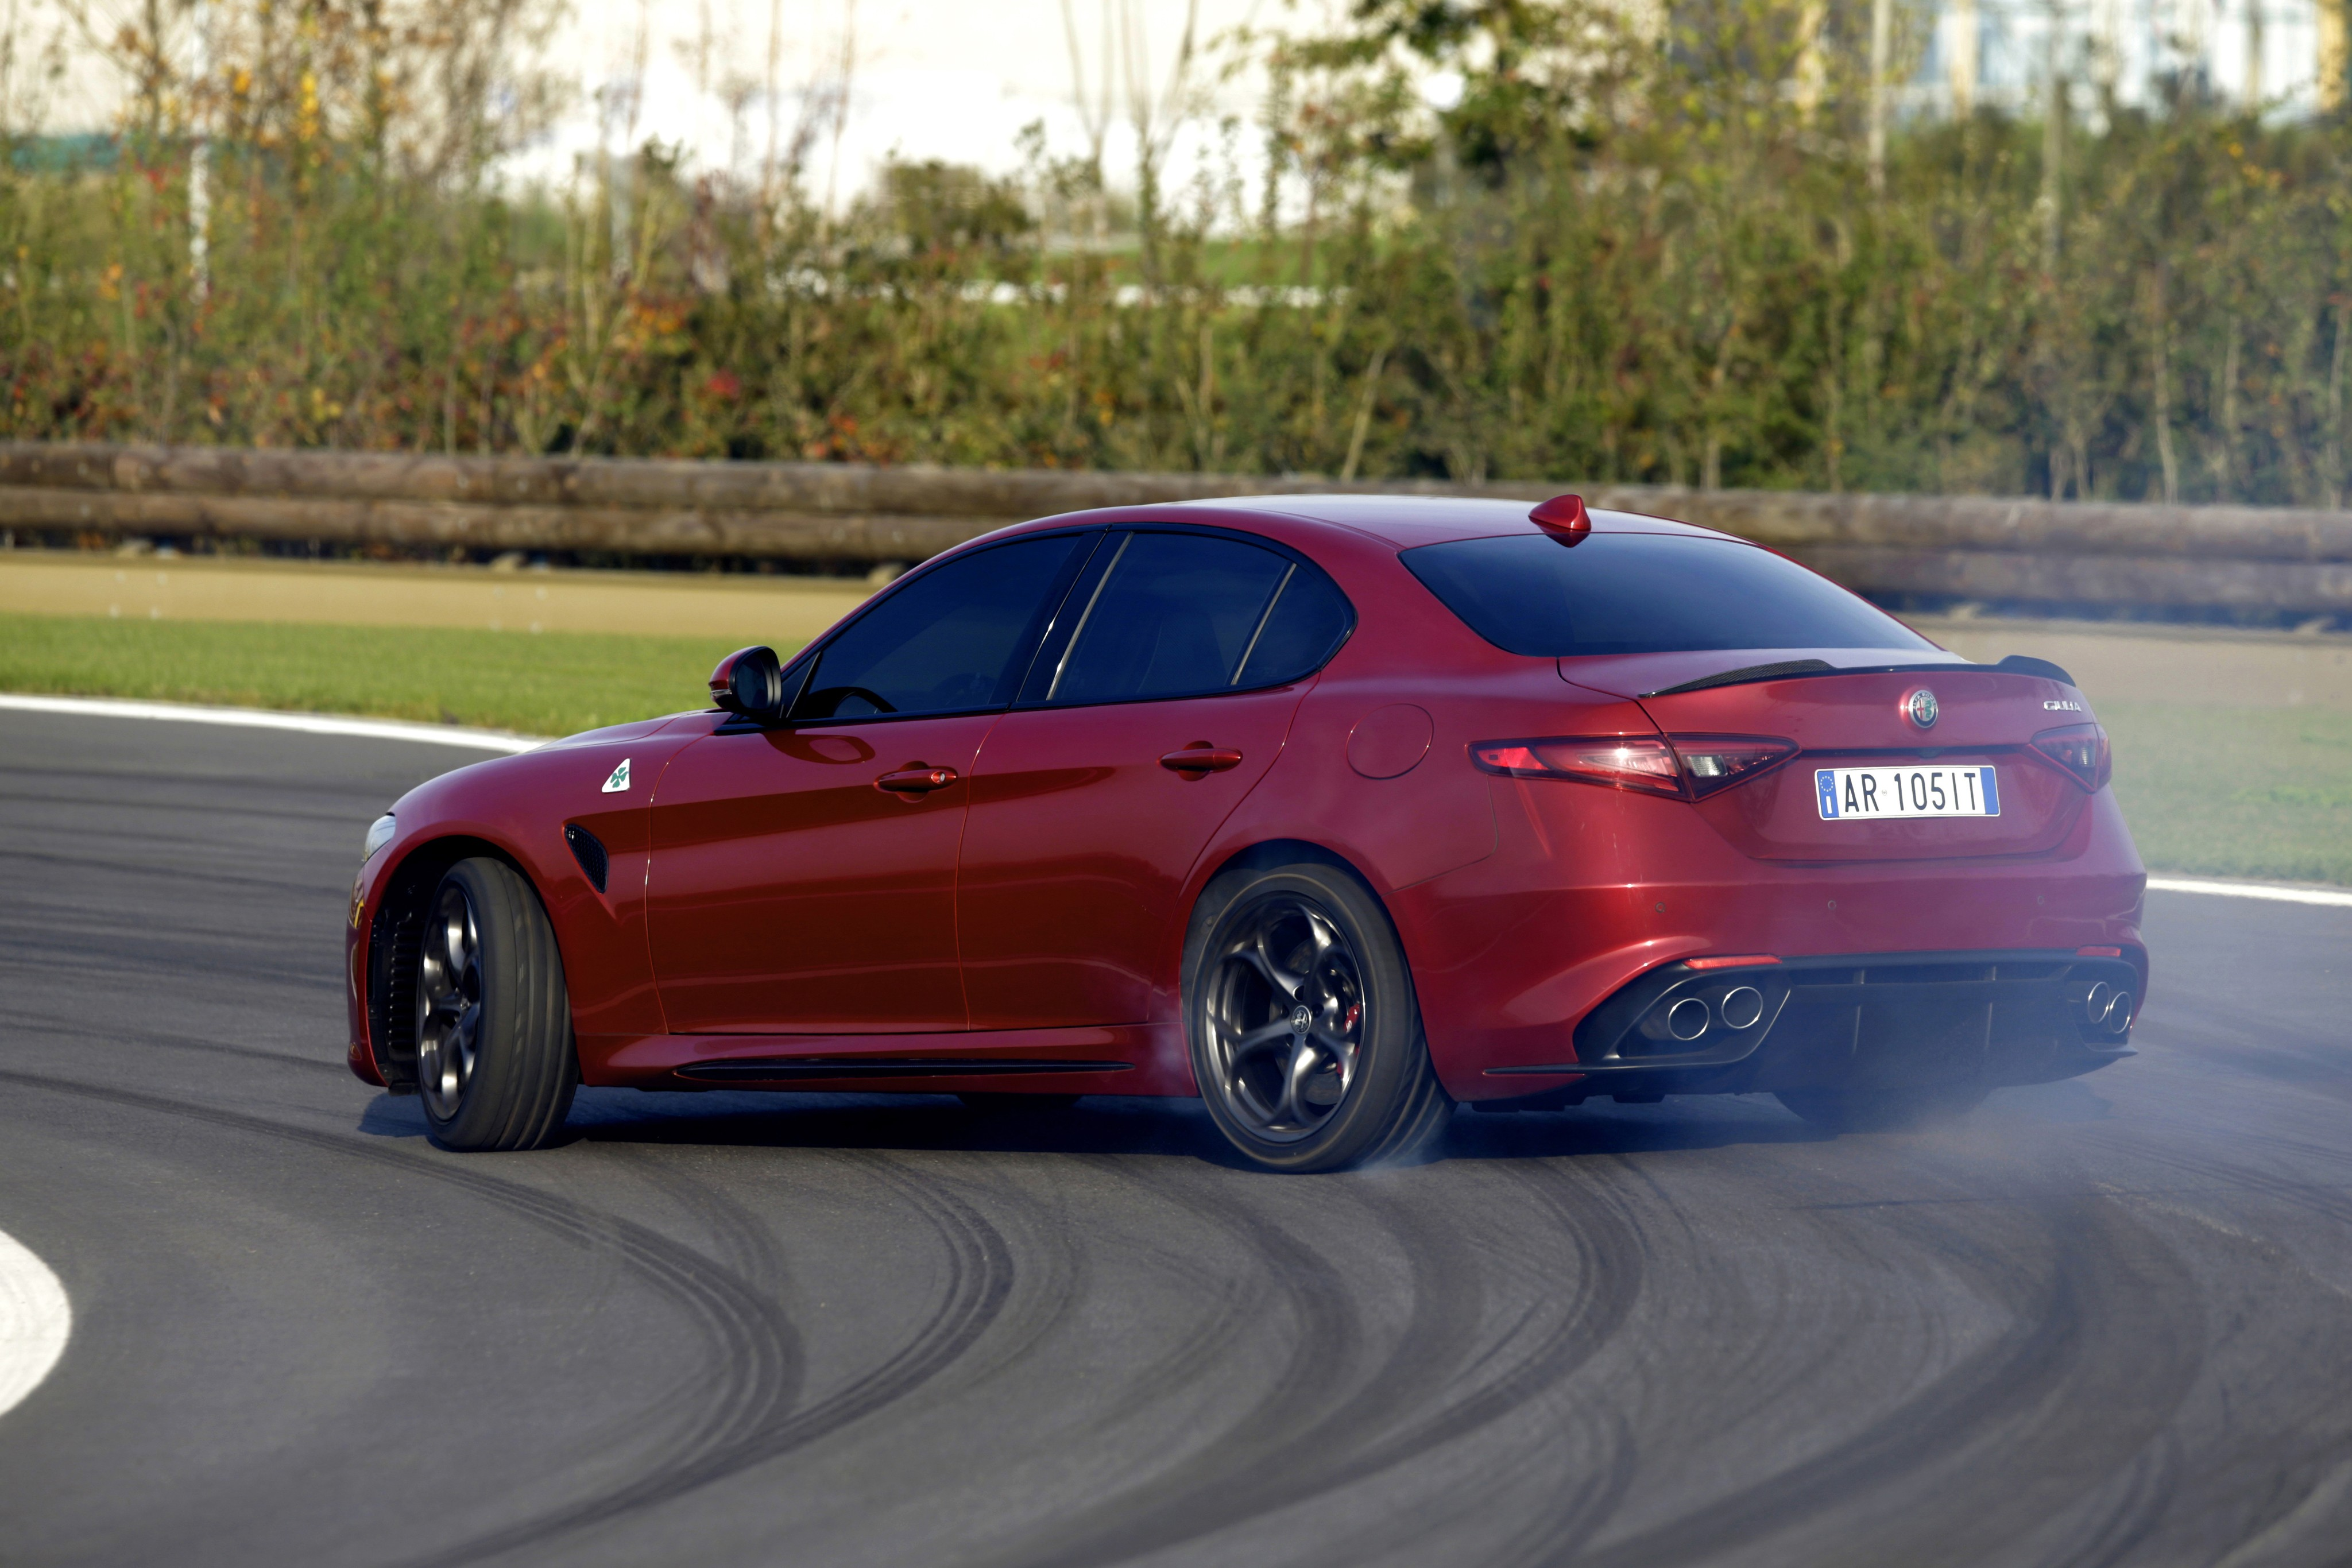 2017 alfa romeo giulia 2 0 turbo priced in the uk from 29 180 autoevolution. Black Bedroom Furniture Sets. Home Design Ideas